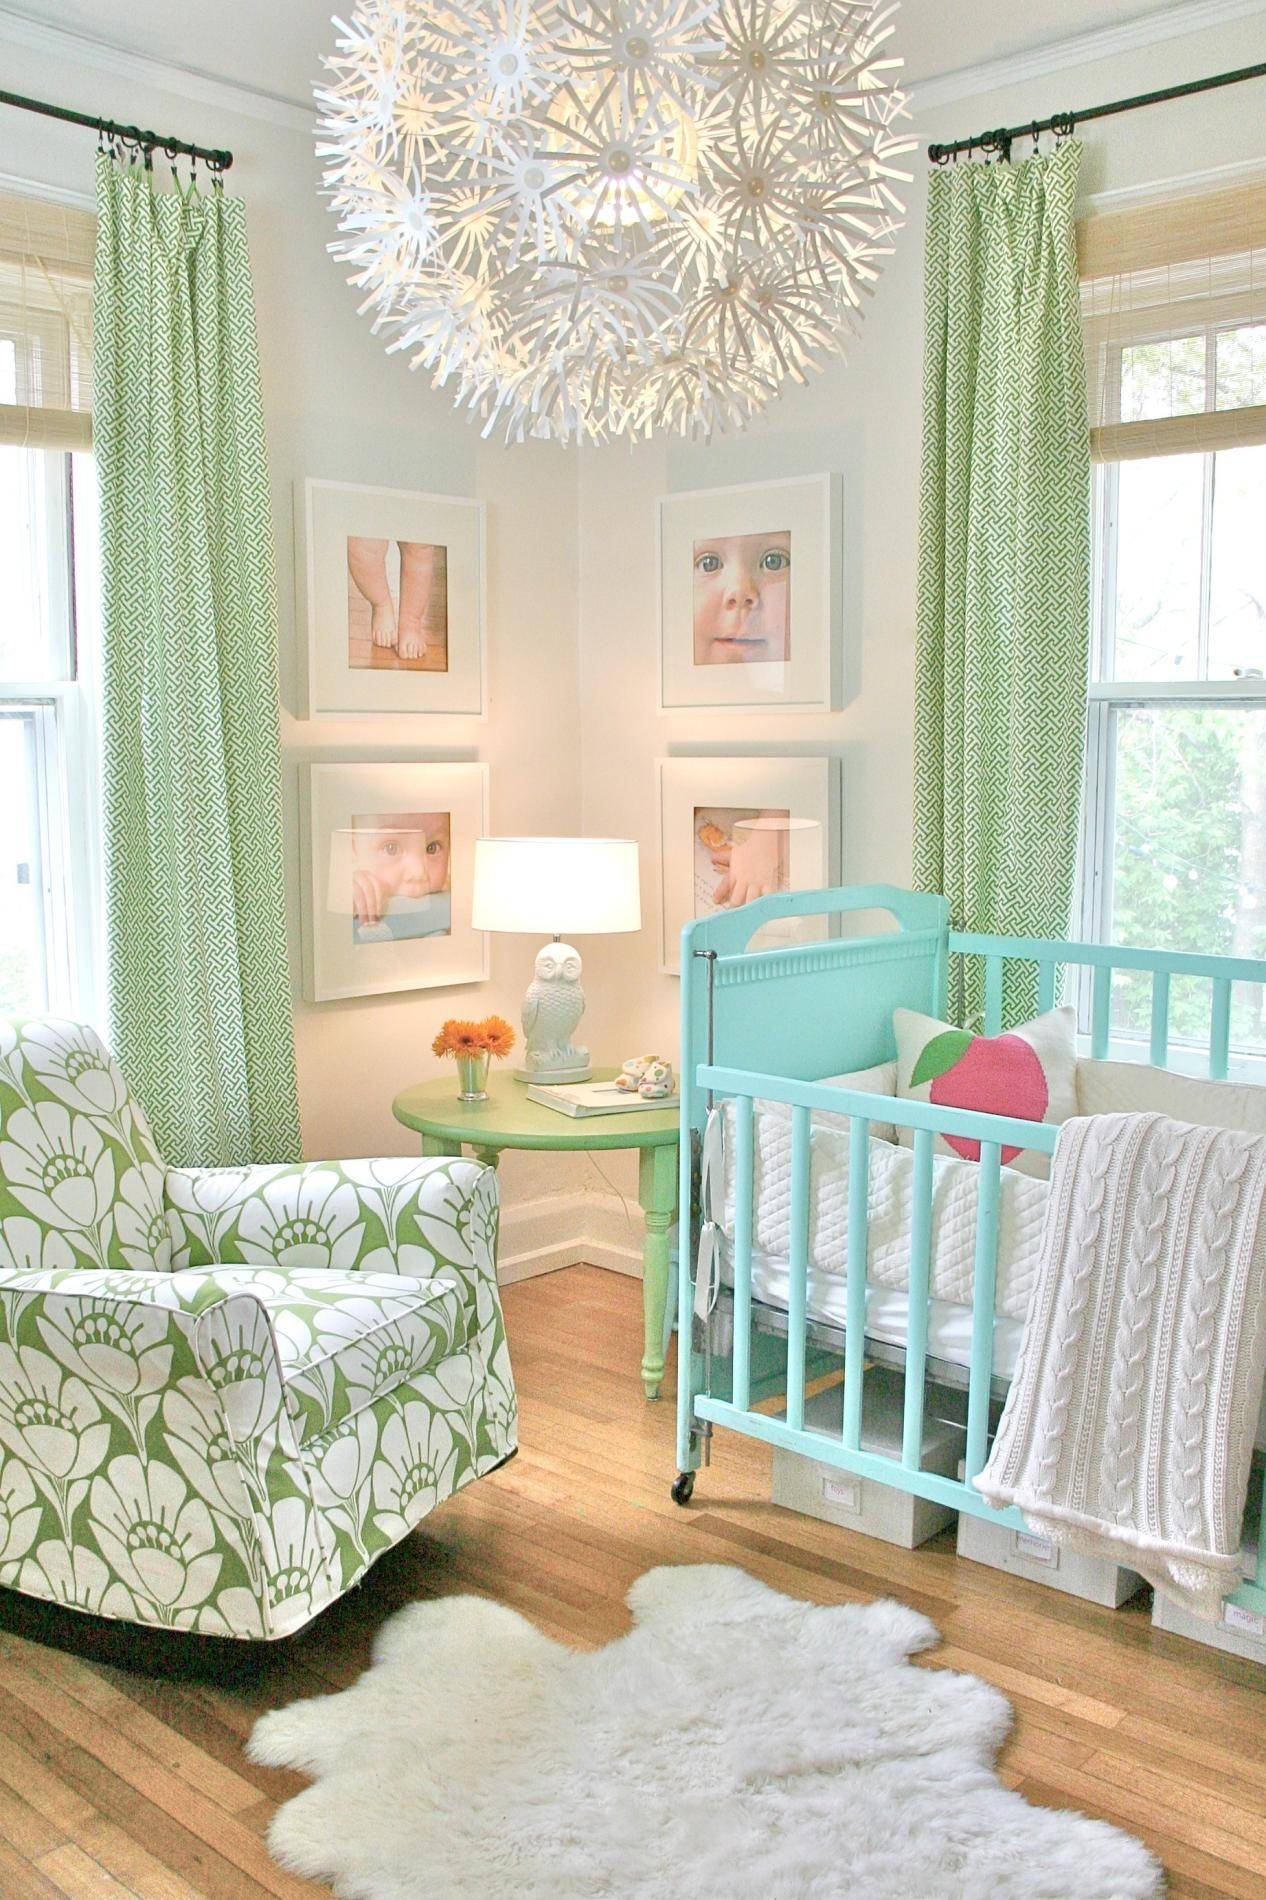 Modern And Minimalist Baby Nursery Furniture Ideas – Amaza Design With Regard To Pendant Lights For Nursery (View 15 of 15)